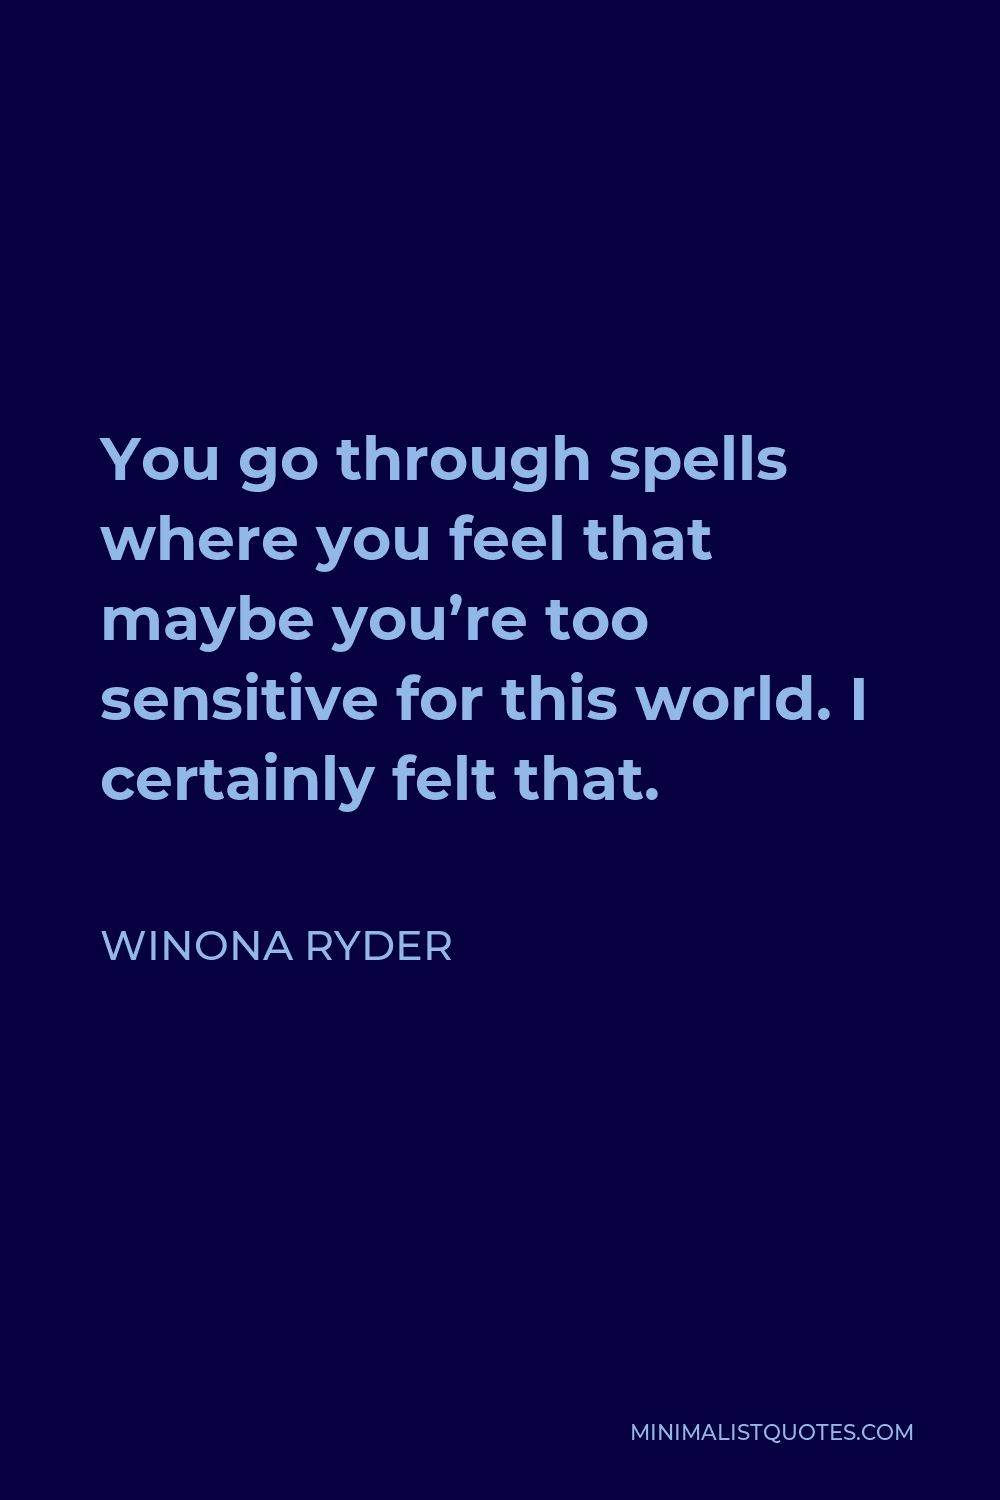 Winona Ryder Quote - You go through spells where you feel that maybe you're too sensitive for this world. I certainly felt that.